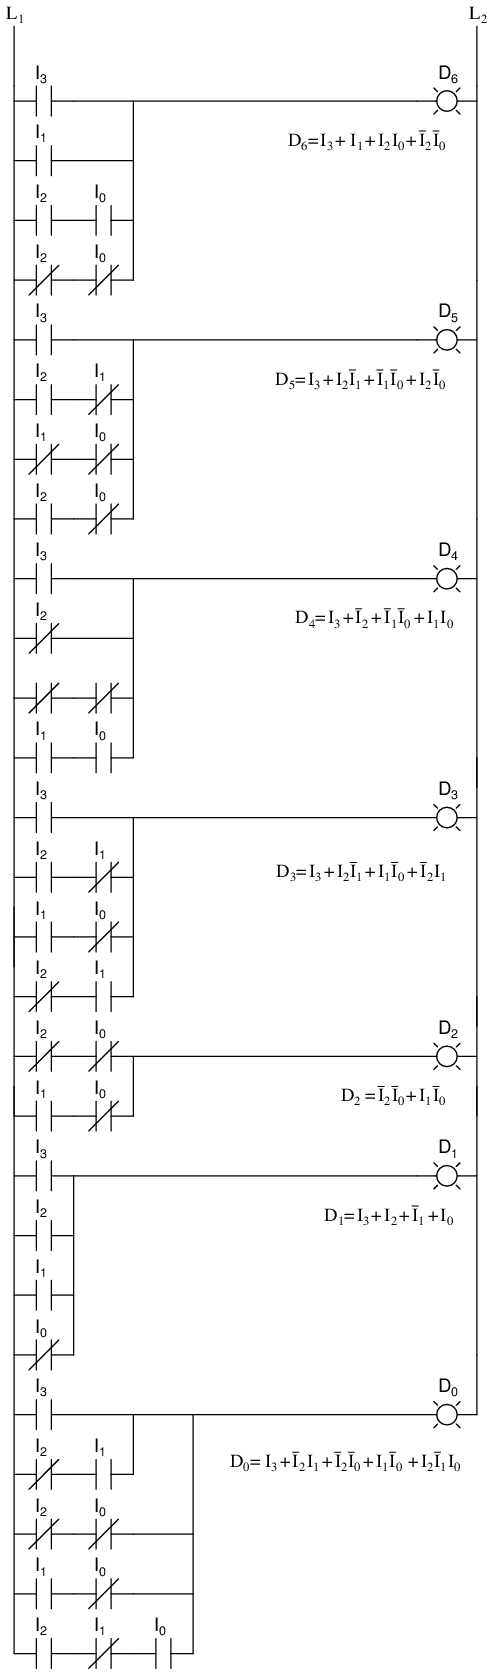 Lessons In Electric Circuits Volume Iv Digital Chapter 9 Ladder Diagram Has A Simplify Programming